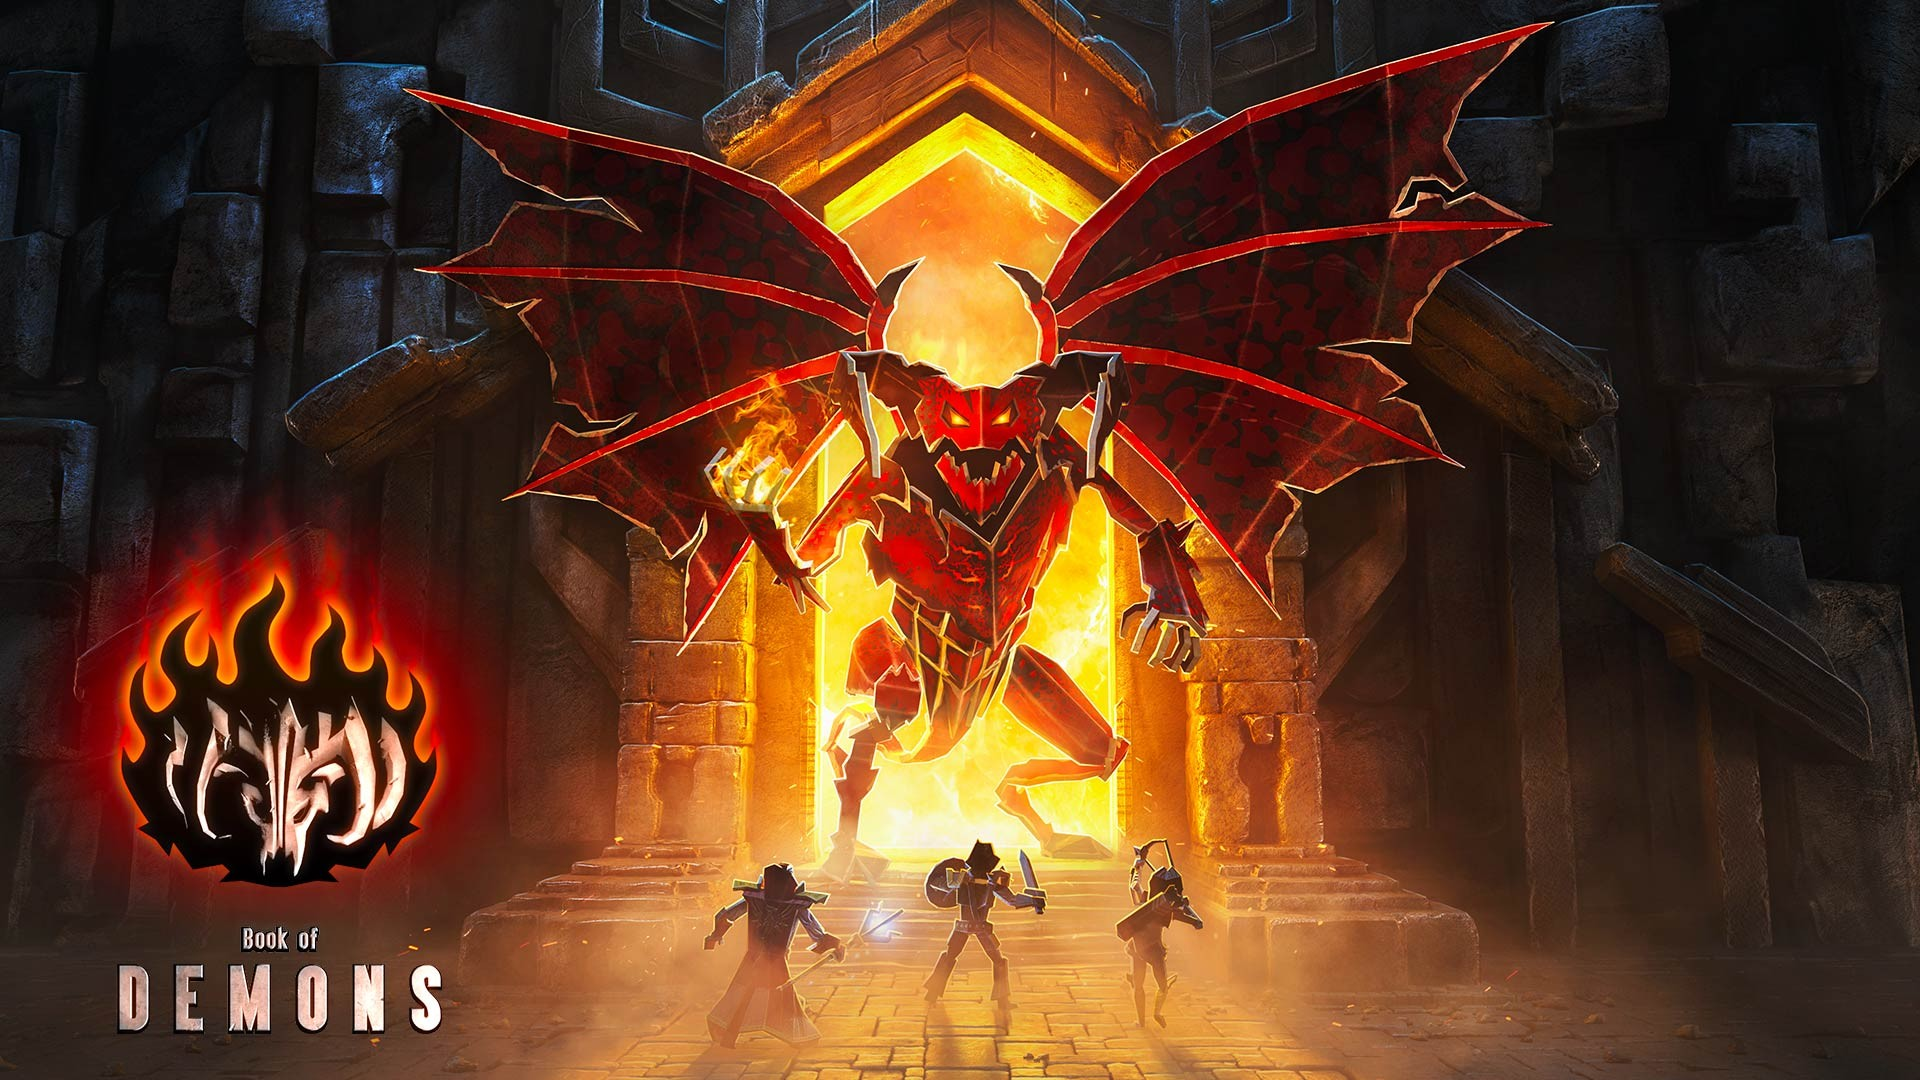 Video For Even Paper Can be Dangerous in Book of Demons, Available Now on Xbox One